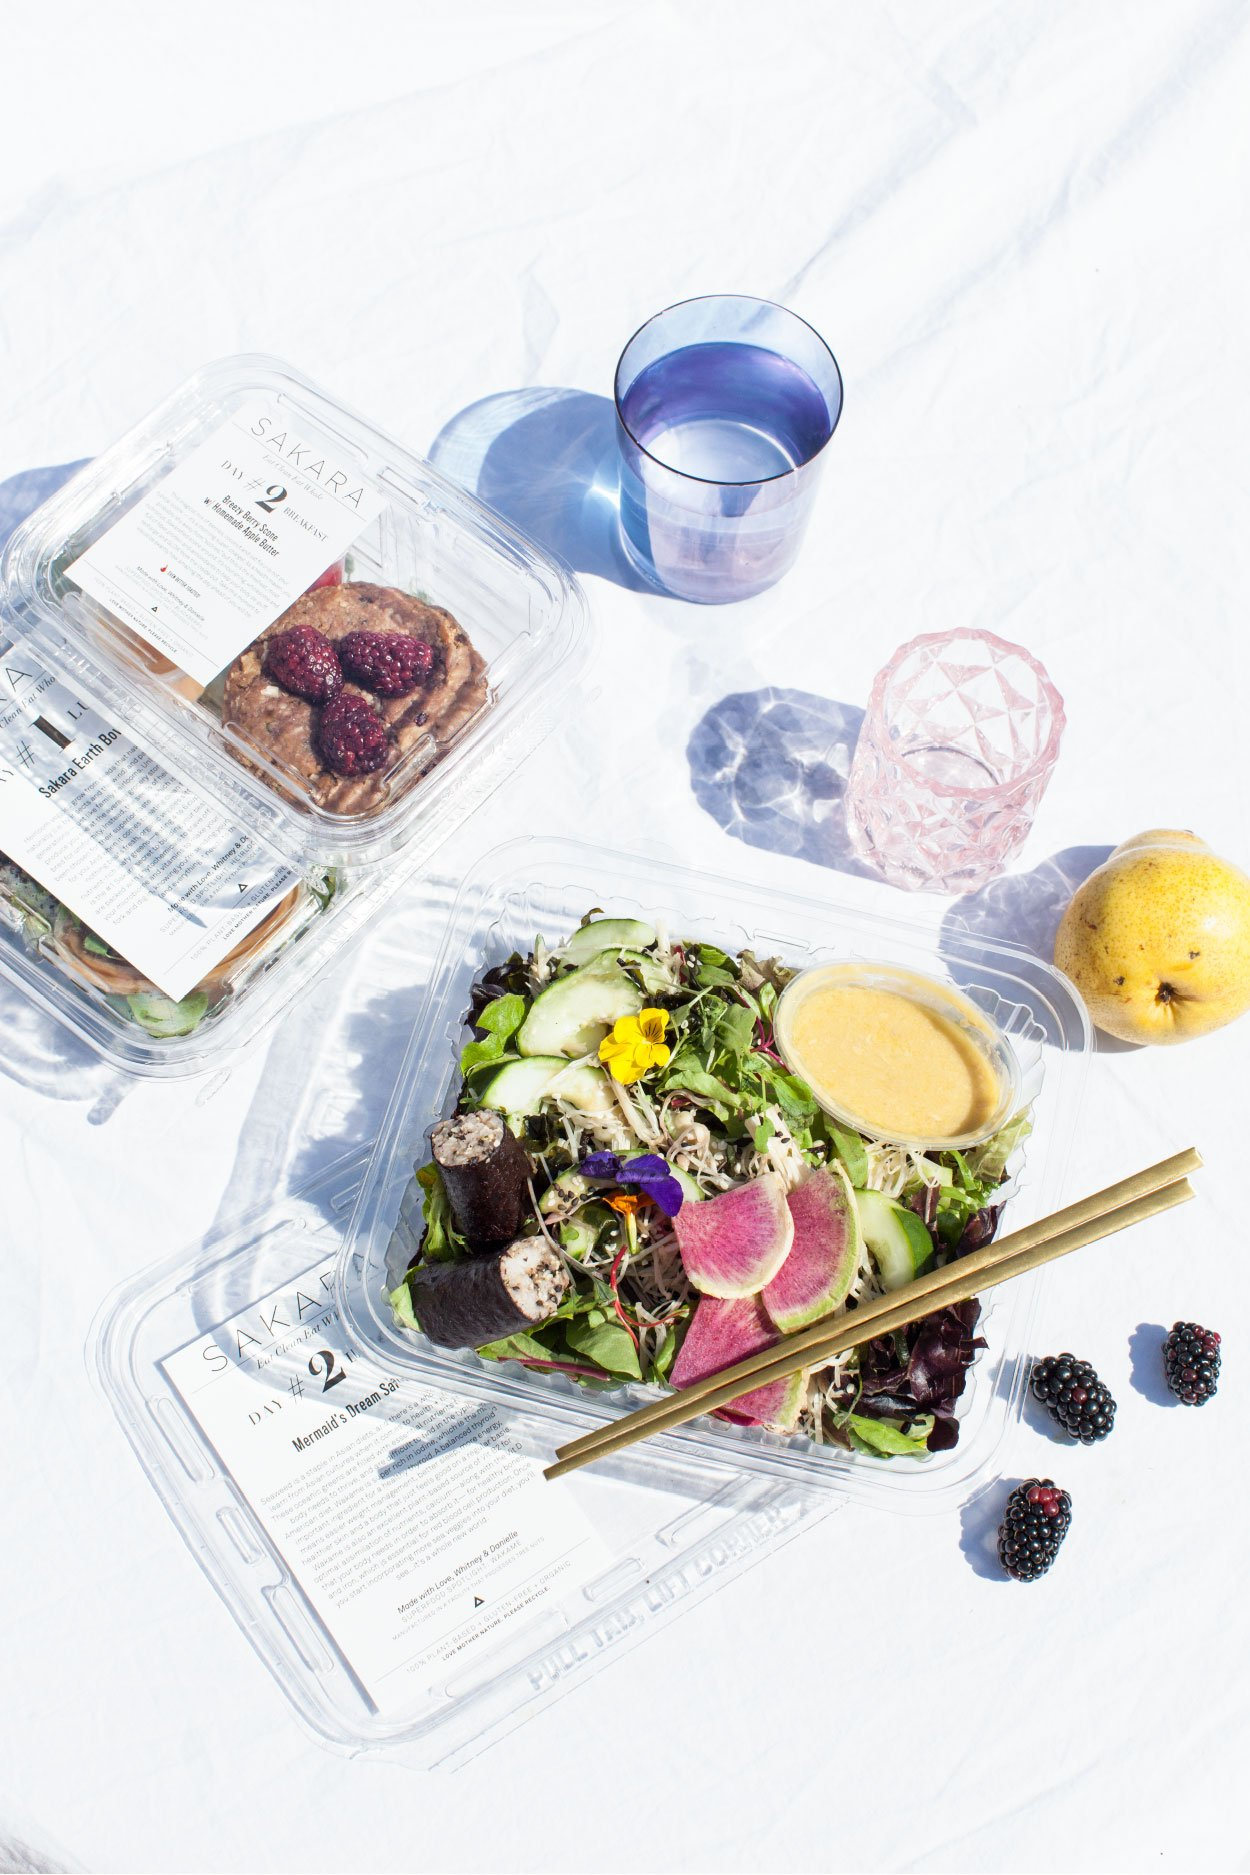 best meal delivery services, An open package of Sakara Life meal with chopsticks, two sealed meals, a glass of water and an empty tumbler on a white background